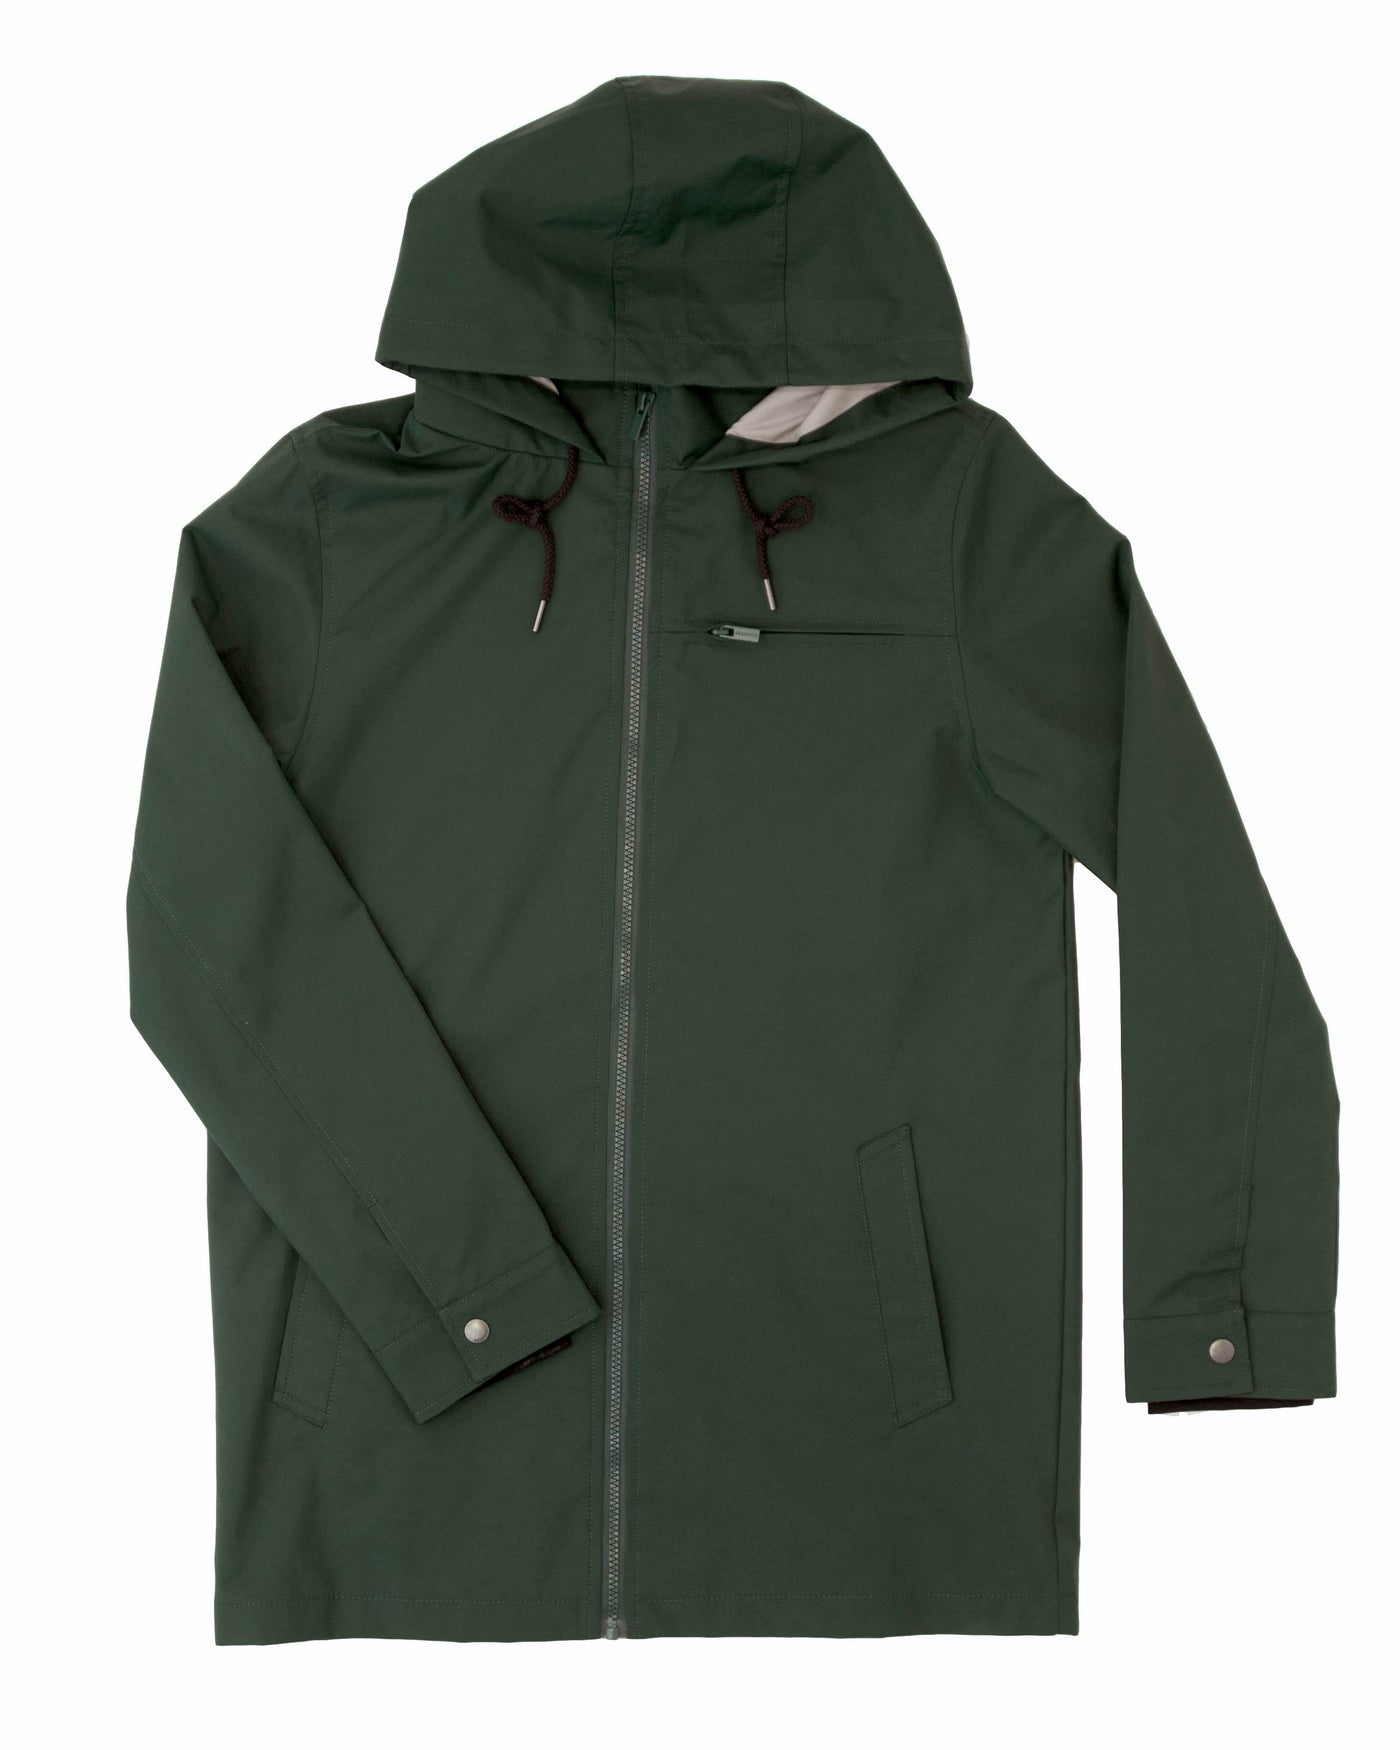 Partington Raincoat- Big Sur